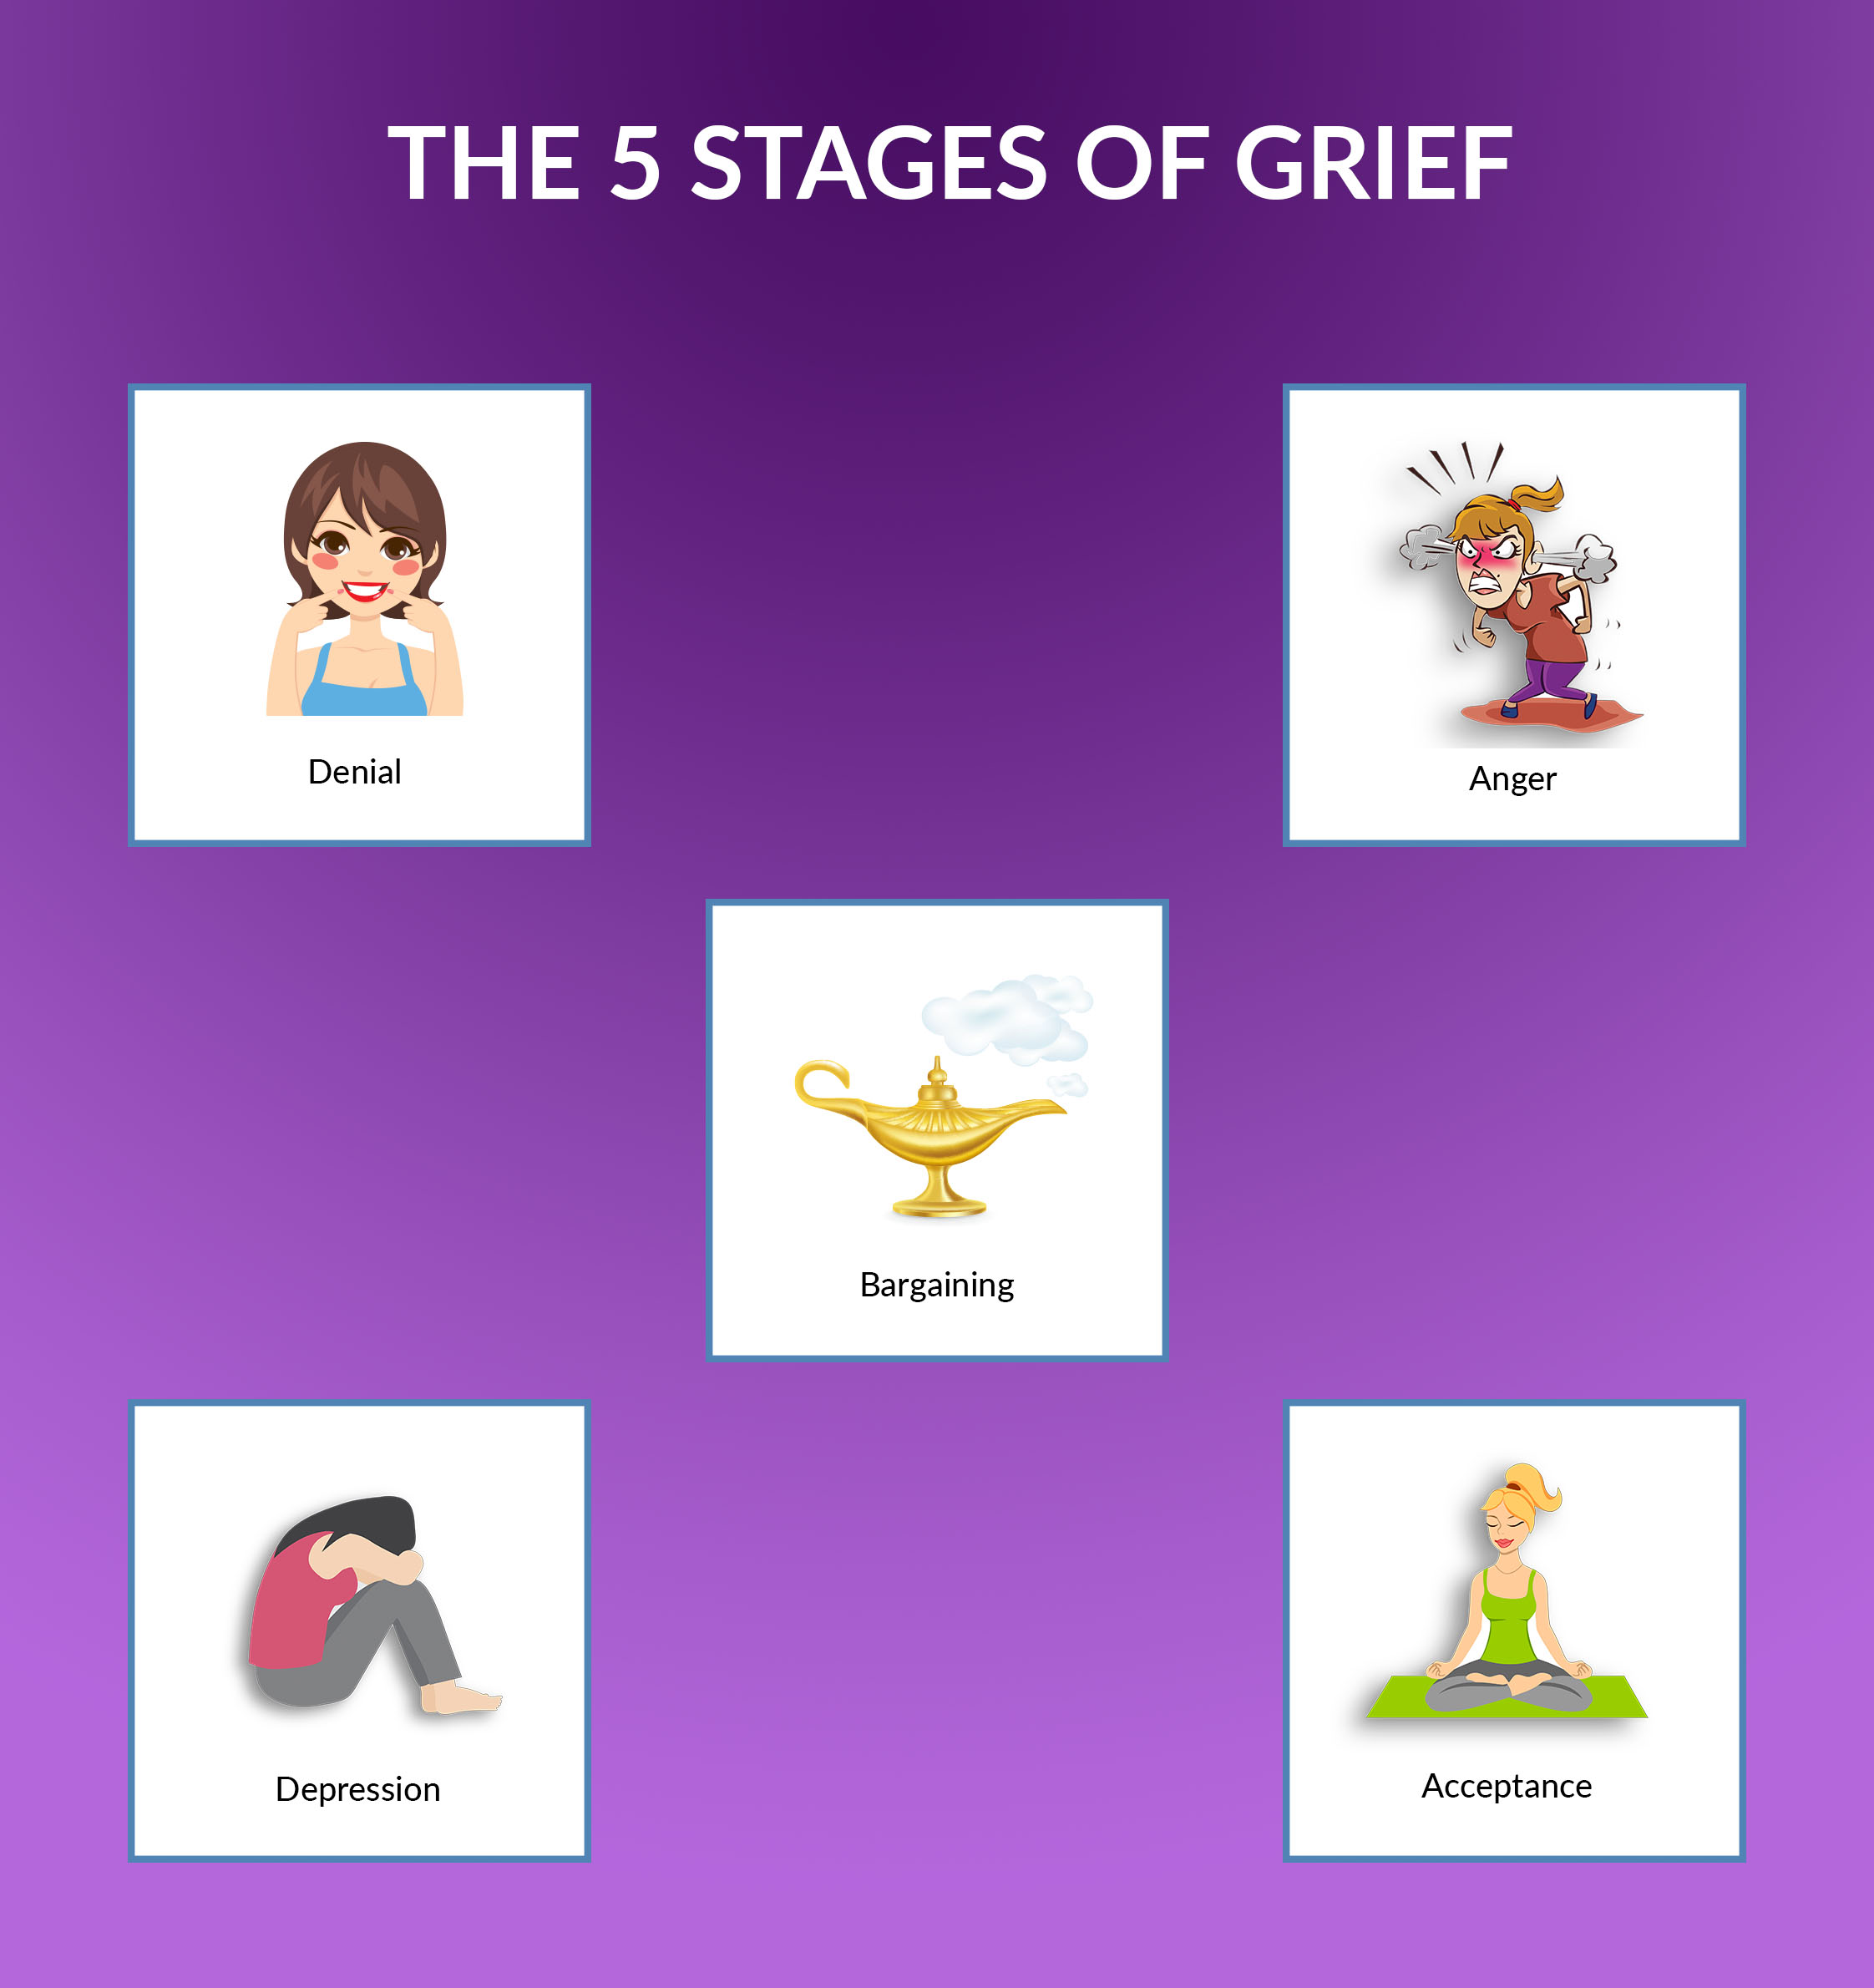 The 5 stages of the grieving process